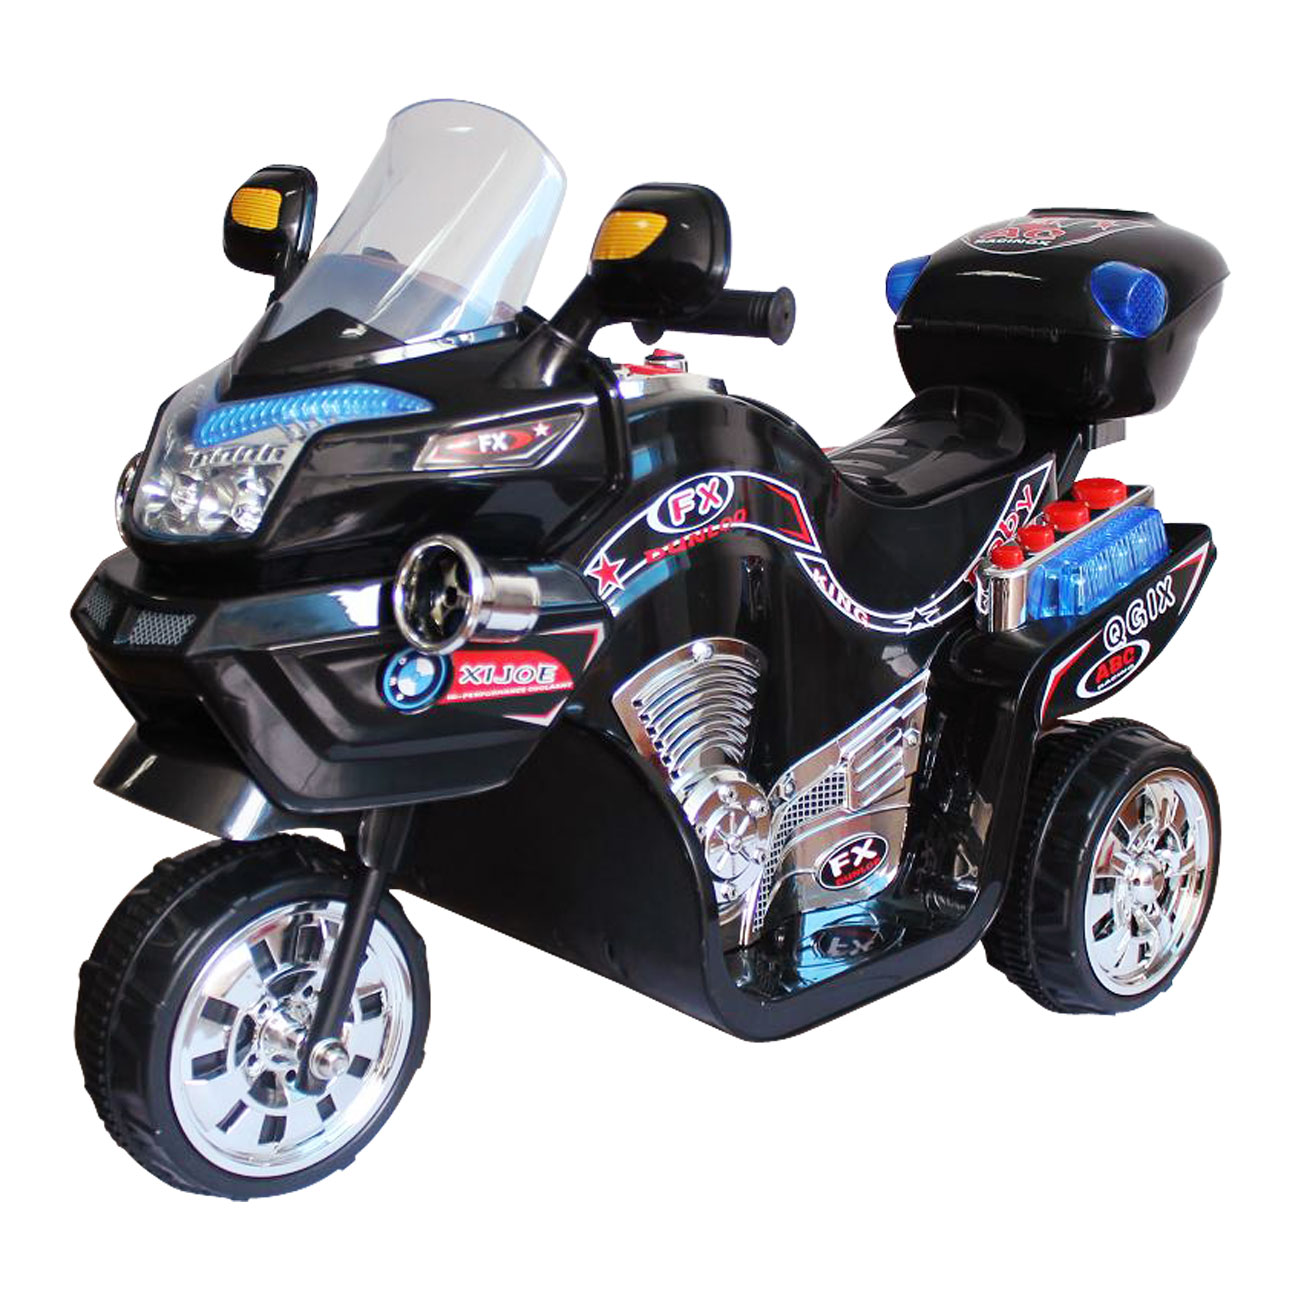 Ride on Toy, 3 Wheel Motorcycle for Kids, Battery Powered Ride On Toy by Lil Rider � Ride... by Trademark Global LLC